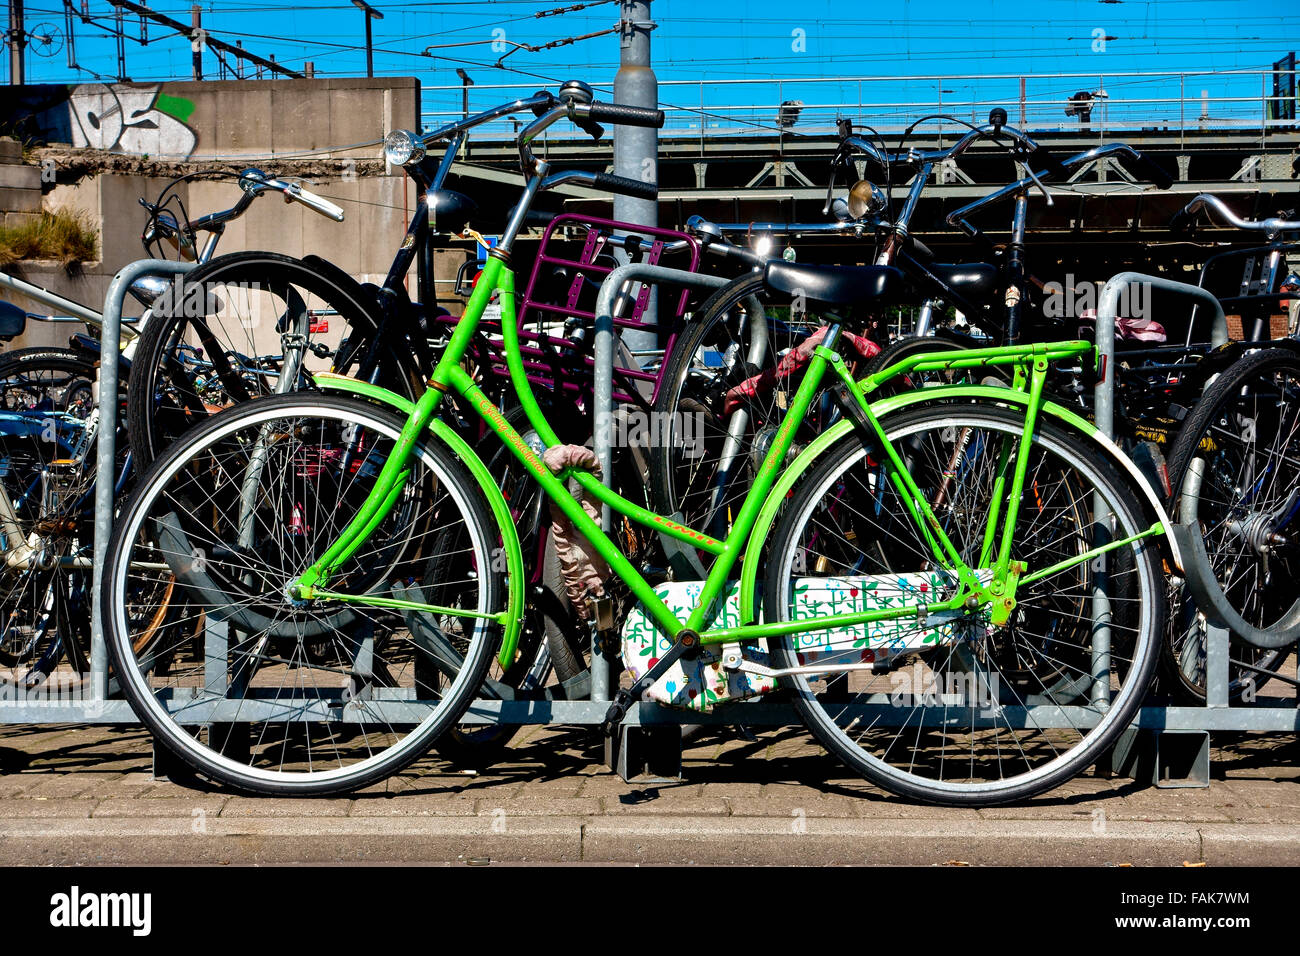 Green bike parked near the railway. Amsterdam, Holland, Netherlands, Europe. Climate change, global warming. Eco - Stock Image